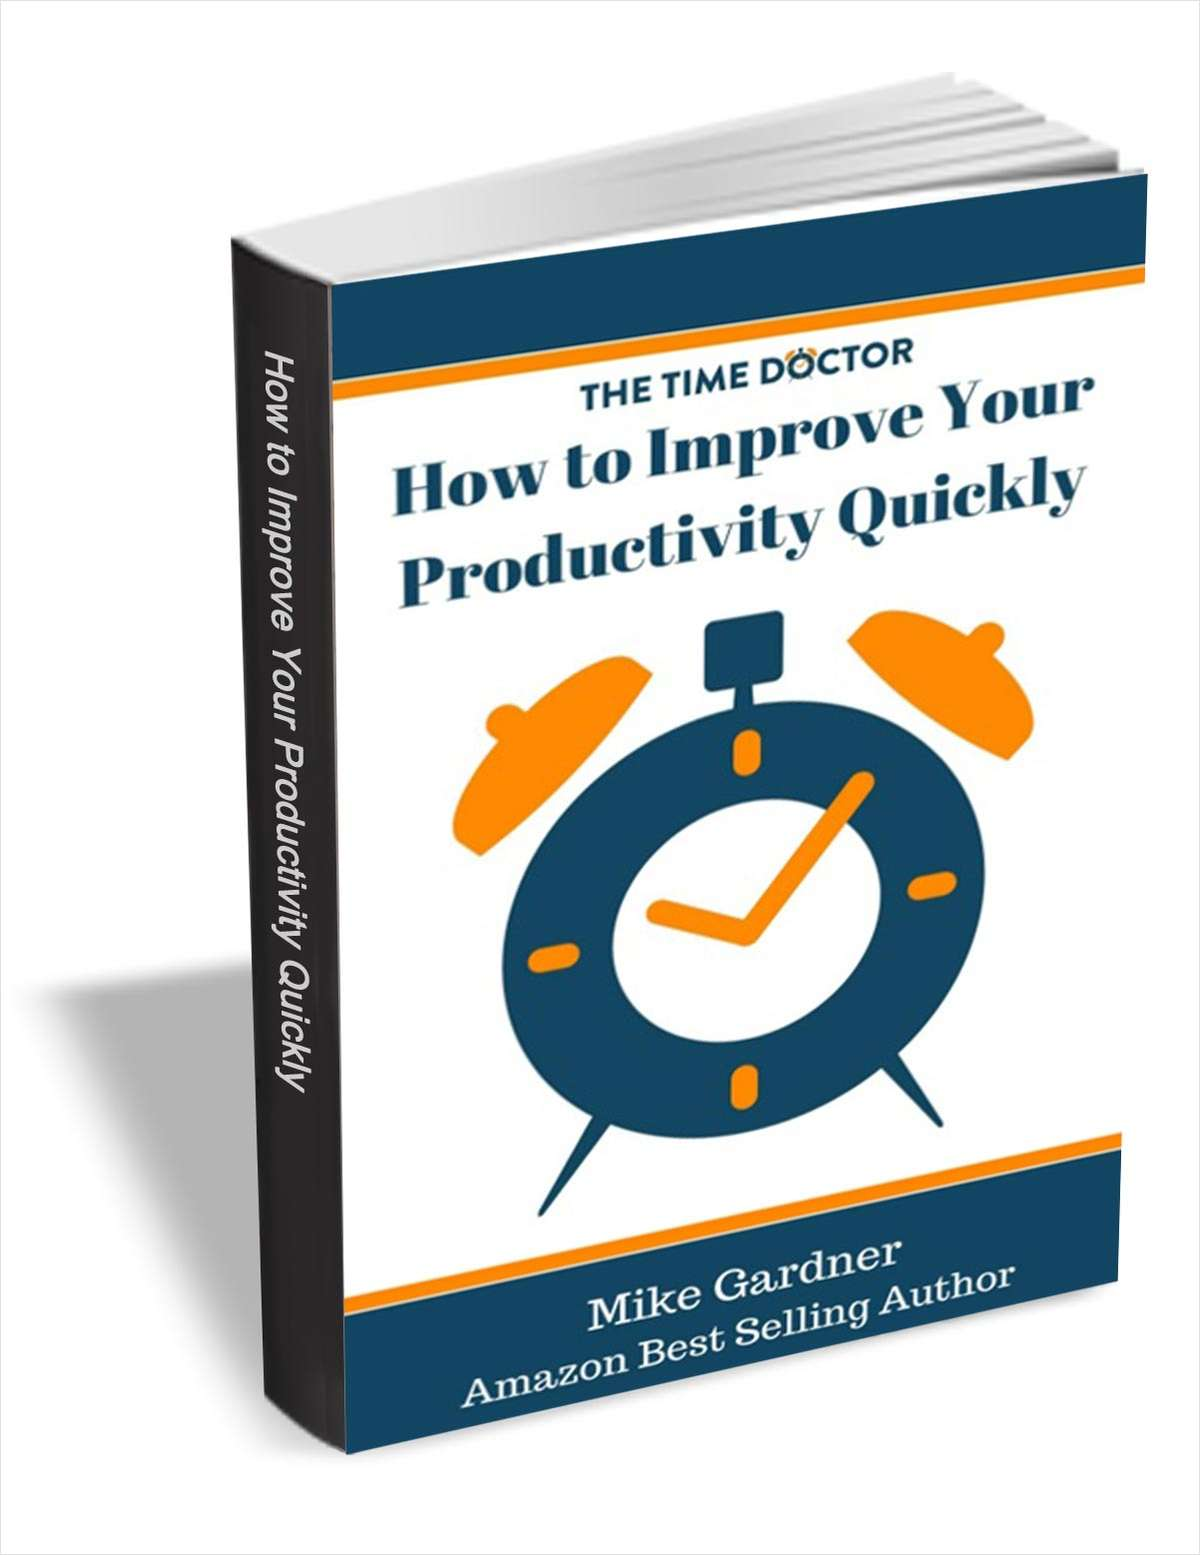 How to Improve Your Productivity Quickly